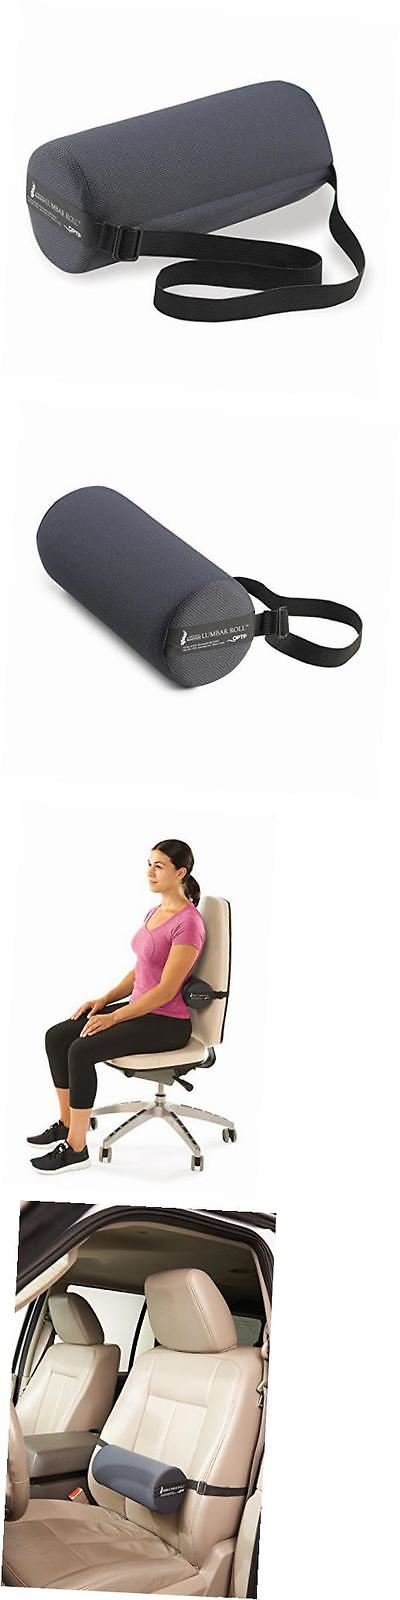 Seat and Posture Cushions The Original Mckenzie Lumbar Roll By - Low Back Support For. Office ChairsLow ...  sc 1 th 280 & Seat and Posture Cushions: The Original Mckenzie Lumbar Roll By ...